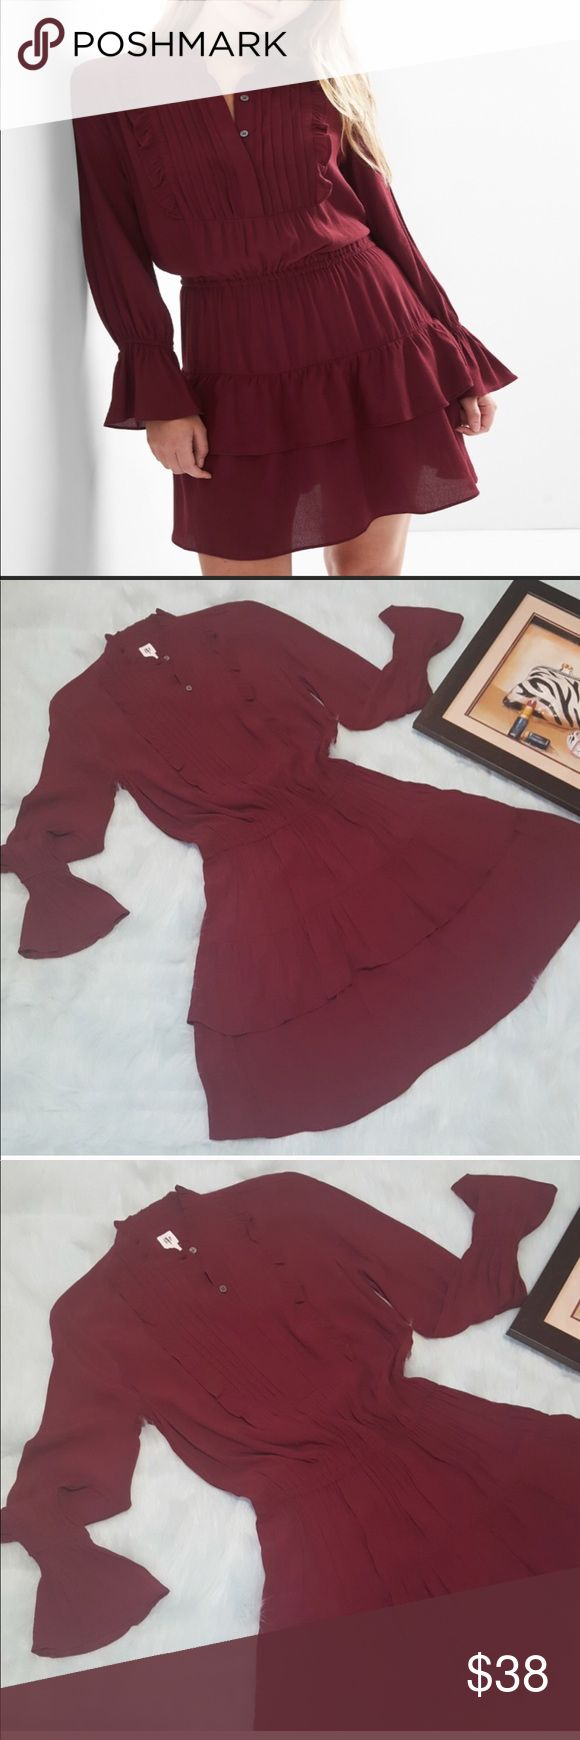 Gap pin tuck dress🌺🌺New listing 💕 Gap ruffle pin tuck dress,straight silhouette with cinched waist ,cute long bell sleeve,ruffle crew neck.No trades or private offers must submit reasonable offer only 😊 GAP Dresses Long Sleeve